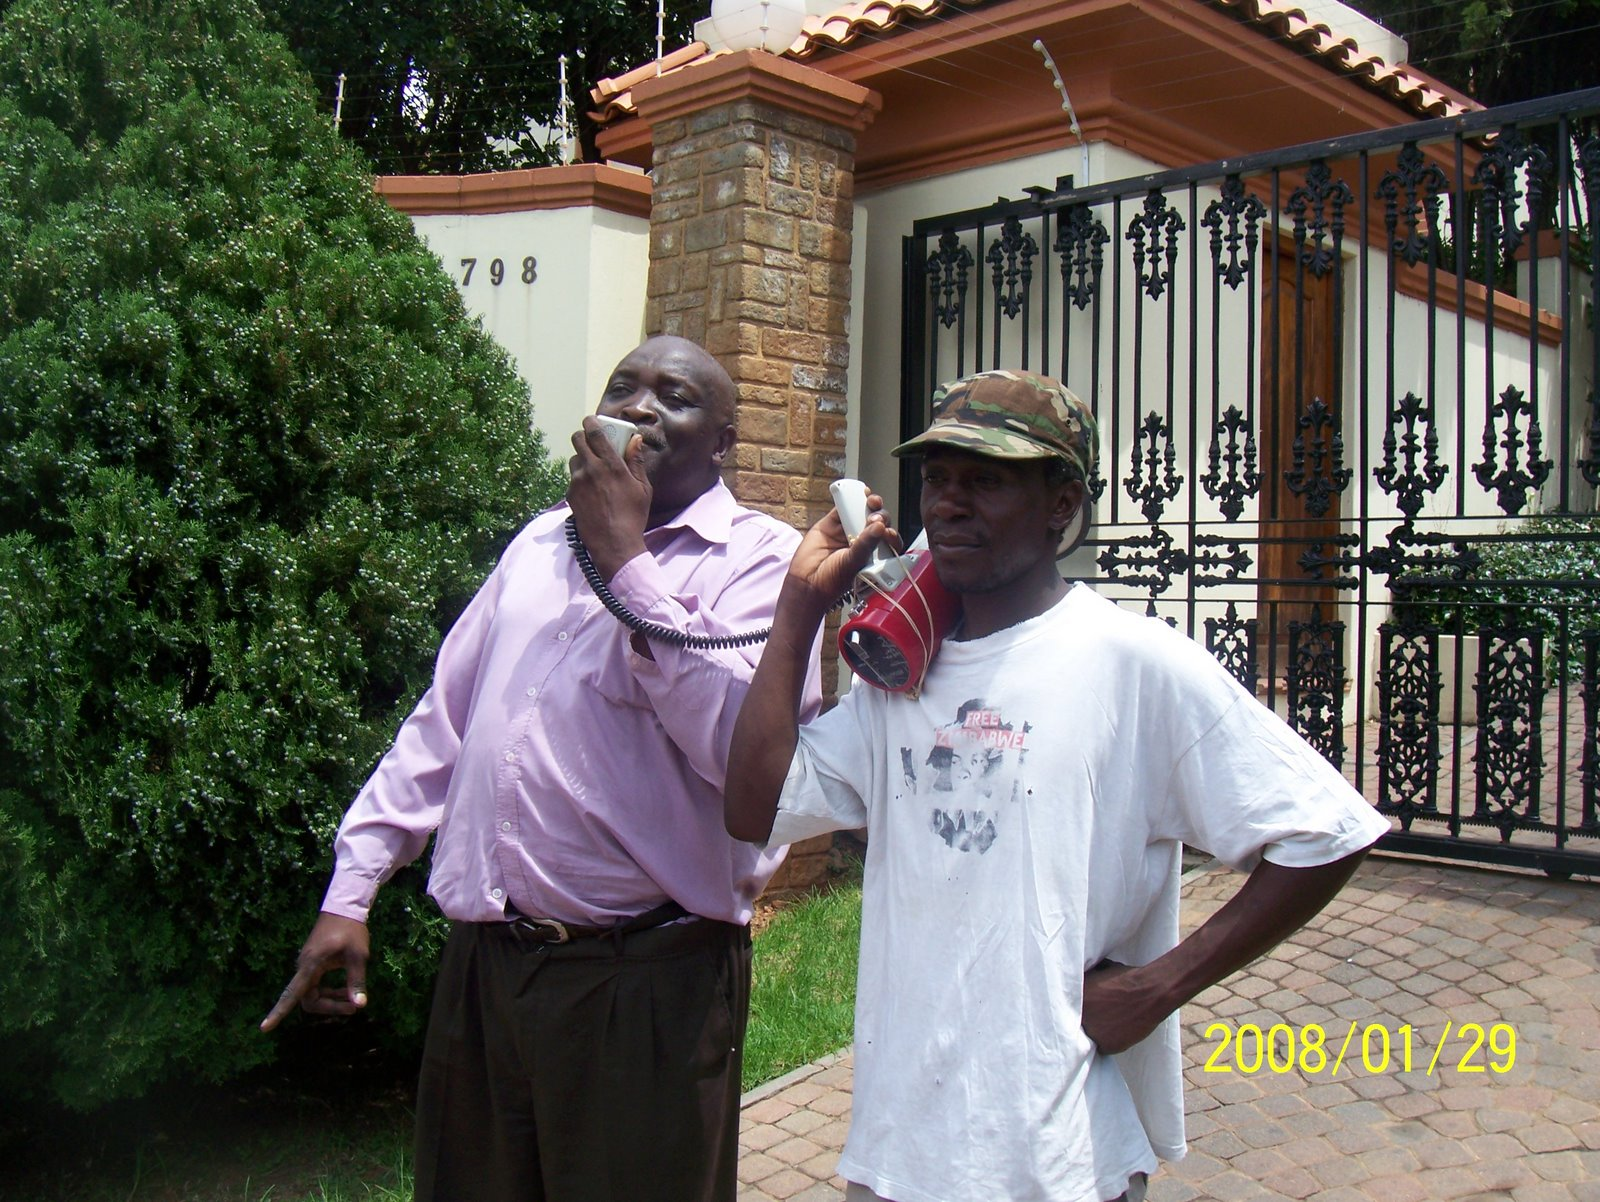 Yes, we were at the Zim Embassy, Pretoria (29/01/2008)